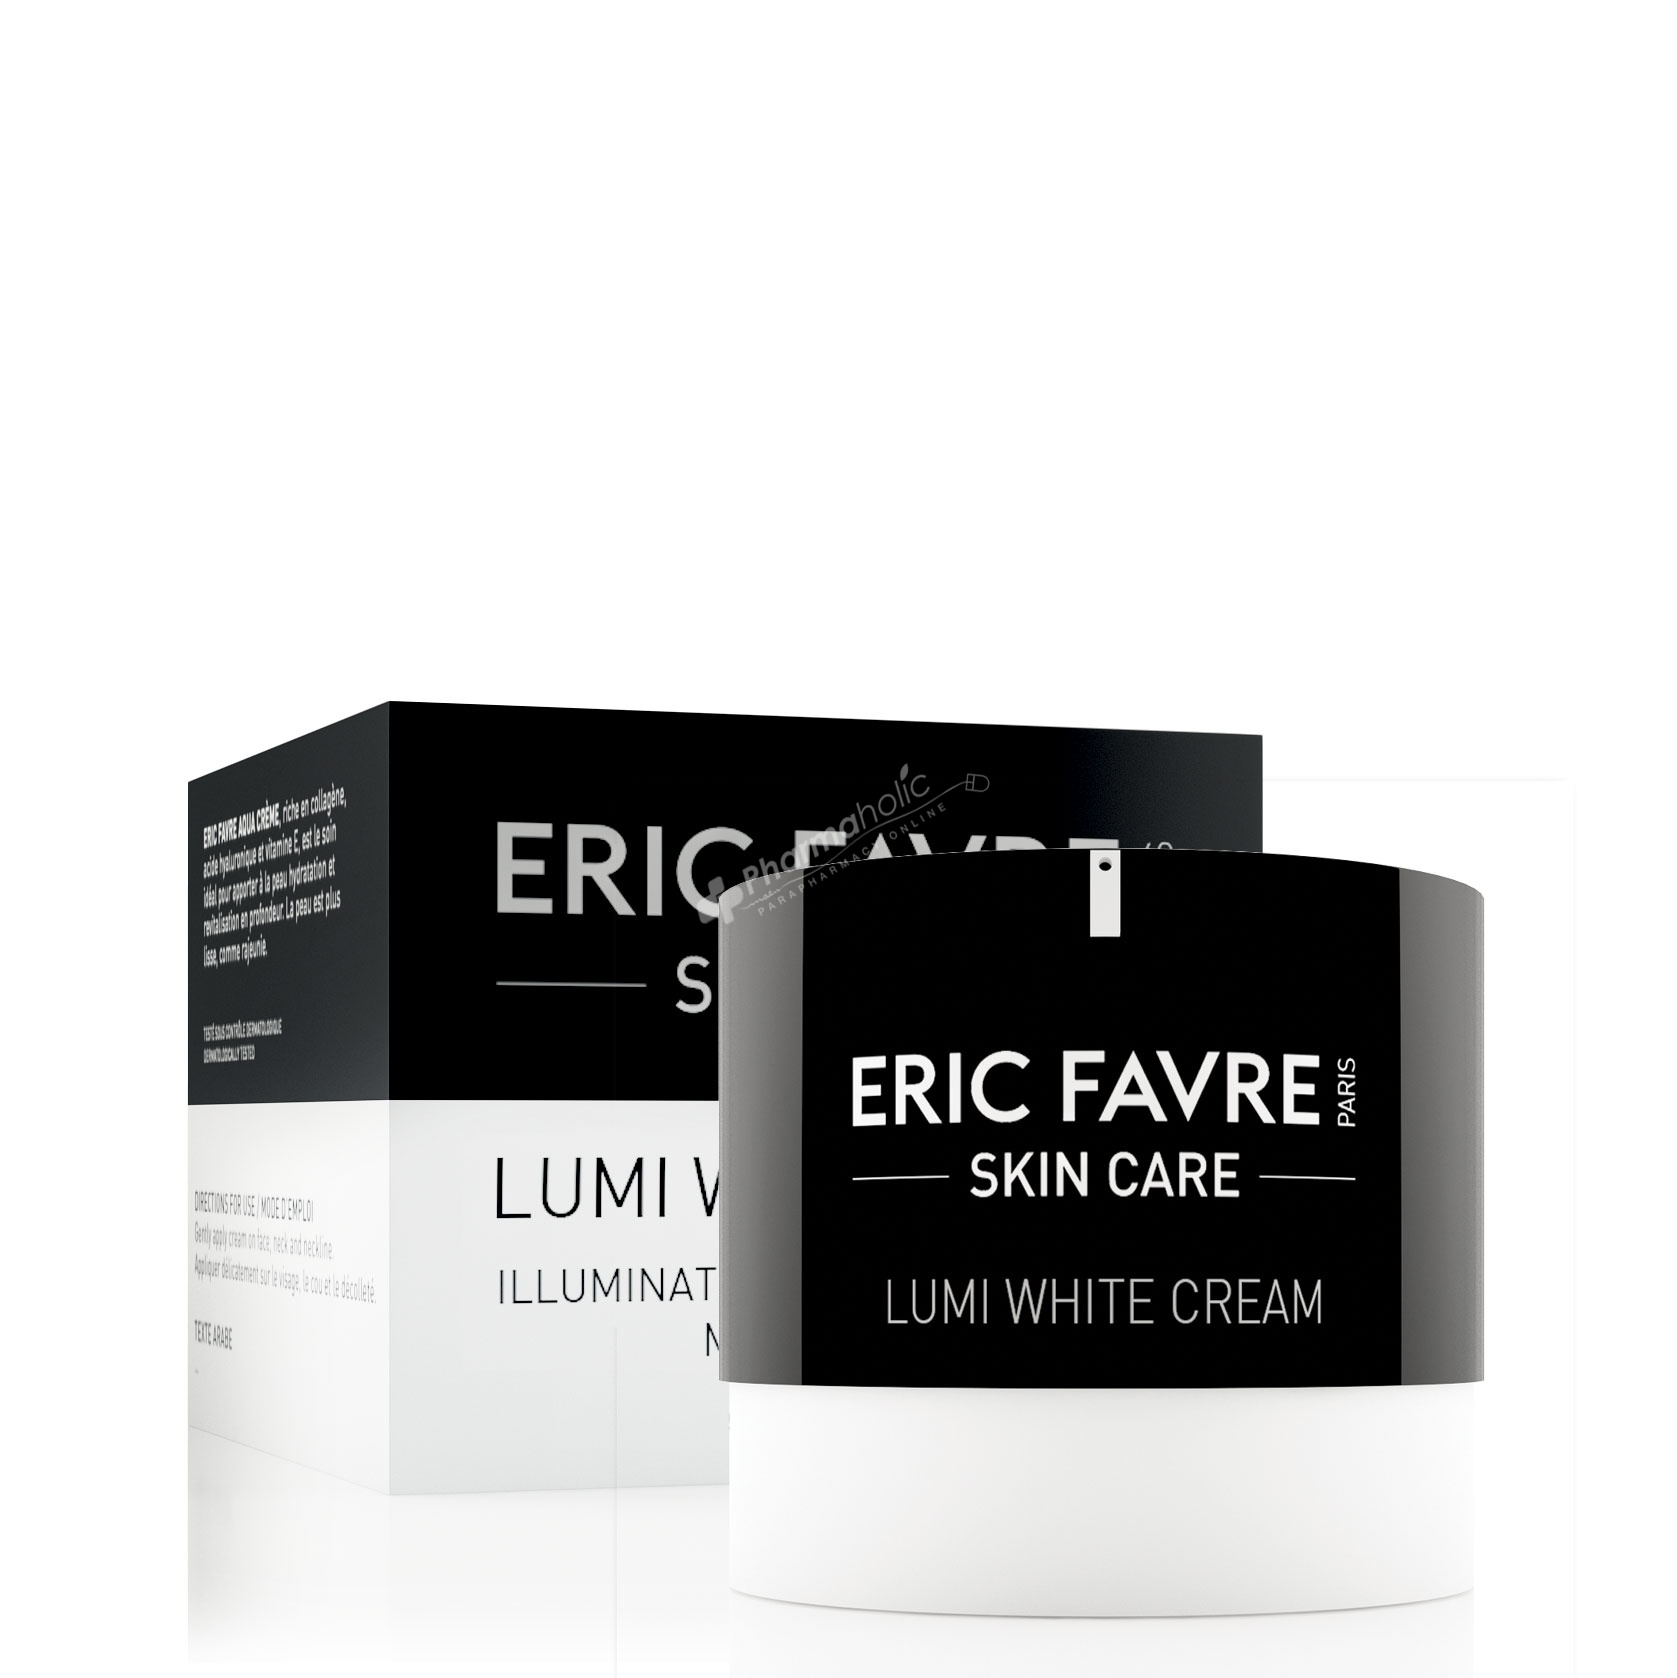 Eric Favre Lumi White Cream